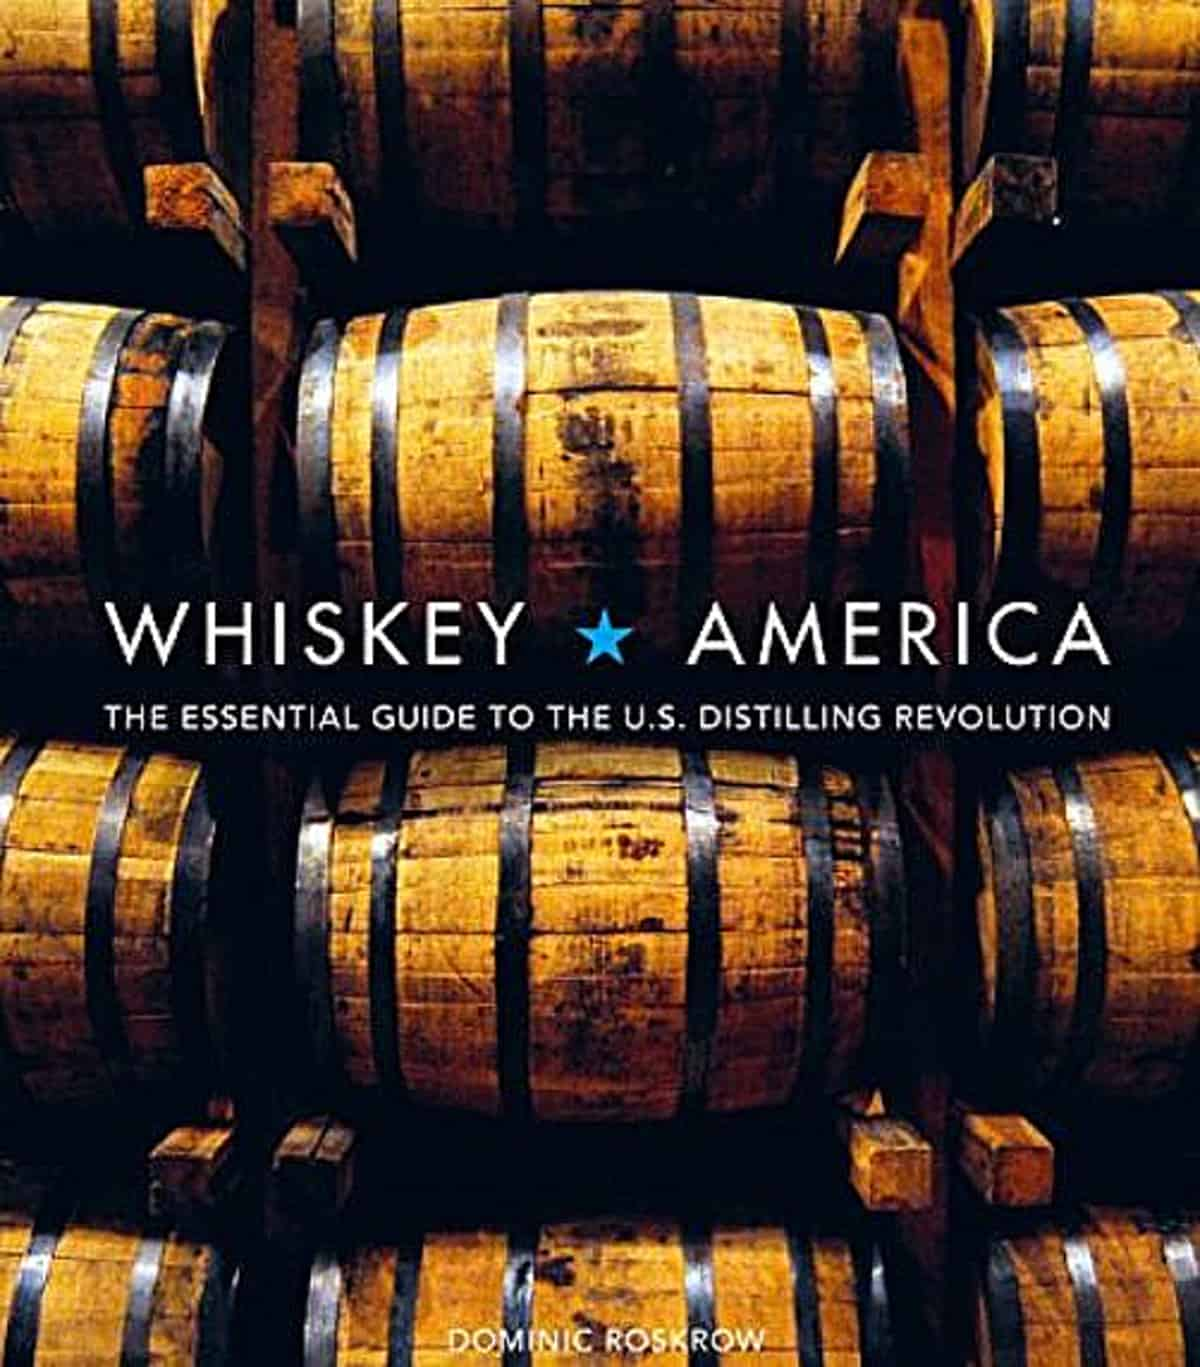 Roskow's expertise shines in this regionally specific book about American whiskey. Pic credit: Mitchell Beazley.